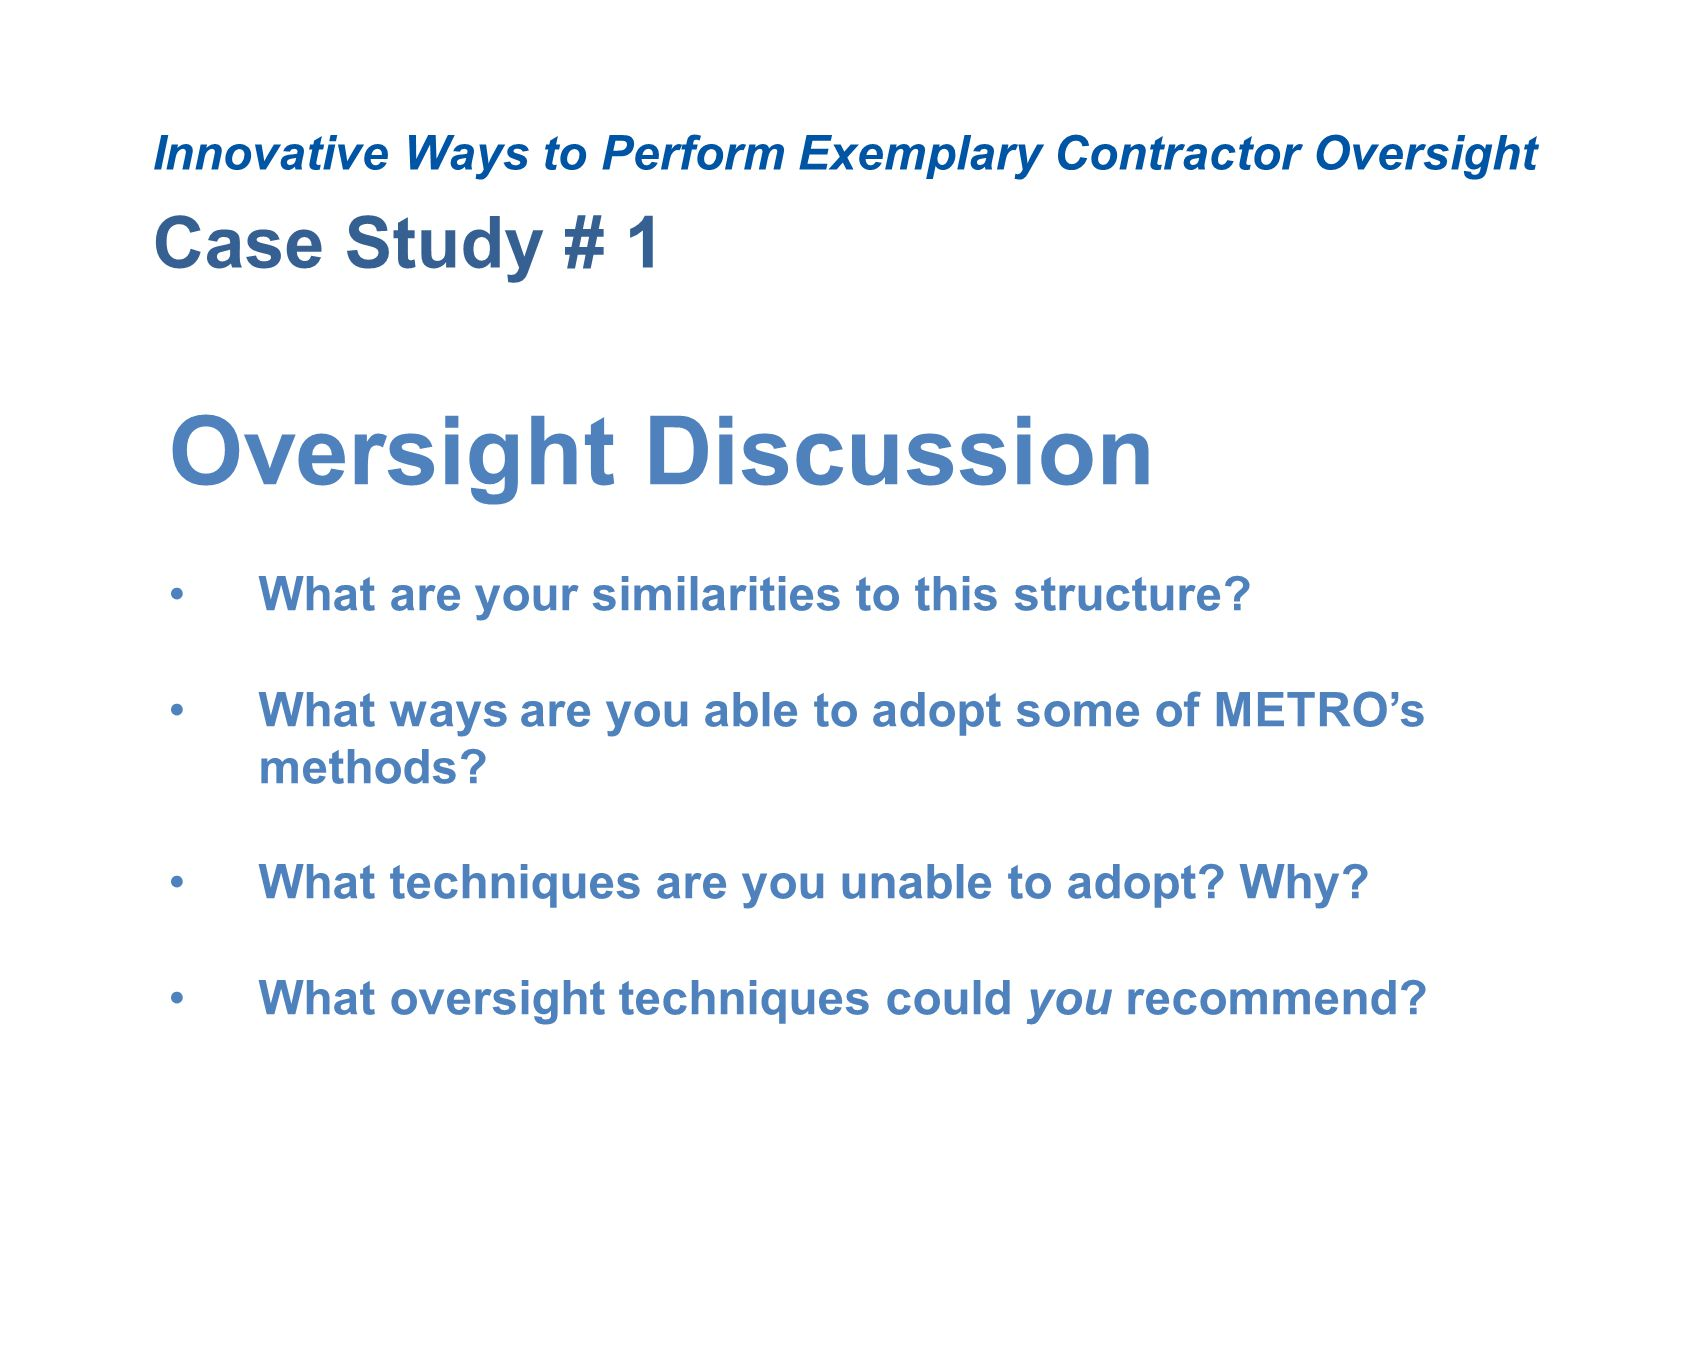 Oversight Discussion Case Study # 1